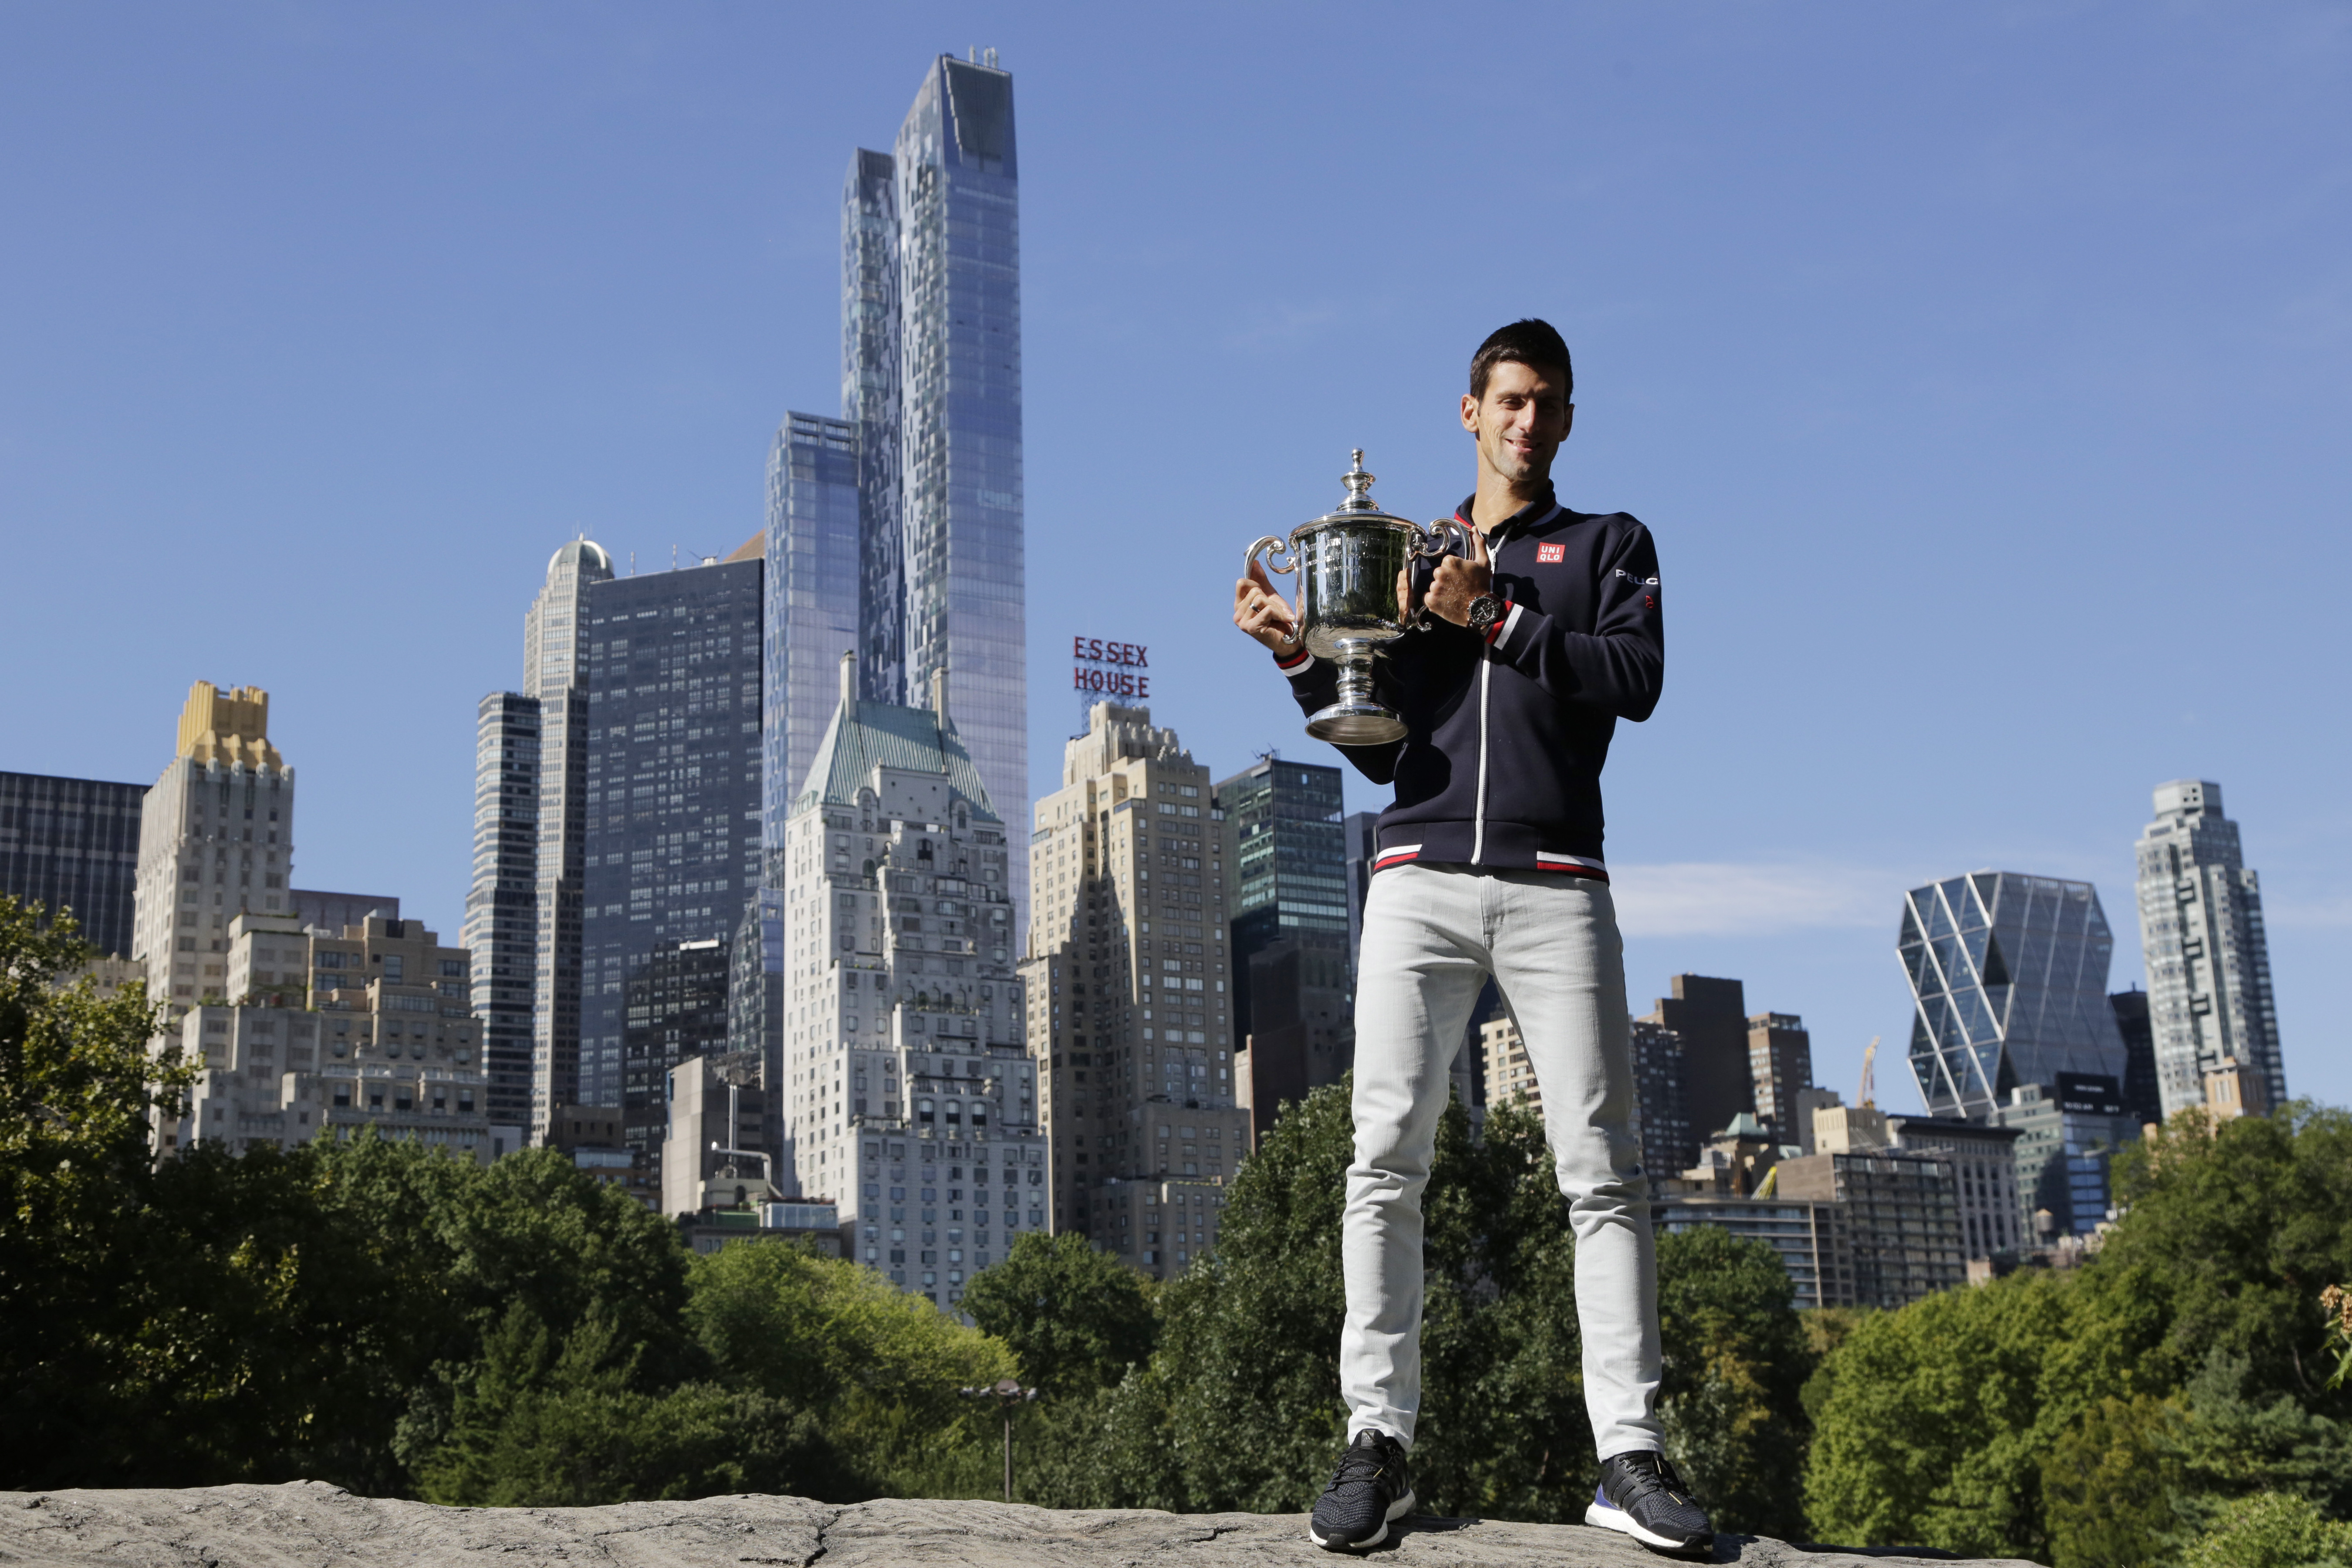 Novak Djokovic poses with the U.S. Open tennis championship trophy, Monday, Sept. 14, 2015, in New York's Central Park. Djokovic defeated Roger Federer 6-4, 5-7, 6-4, 6-4 on Sunday, to earn his second U.S. Open title, third major championship of the year